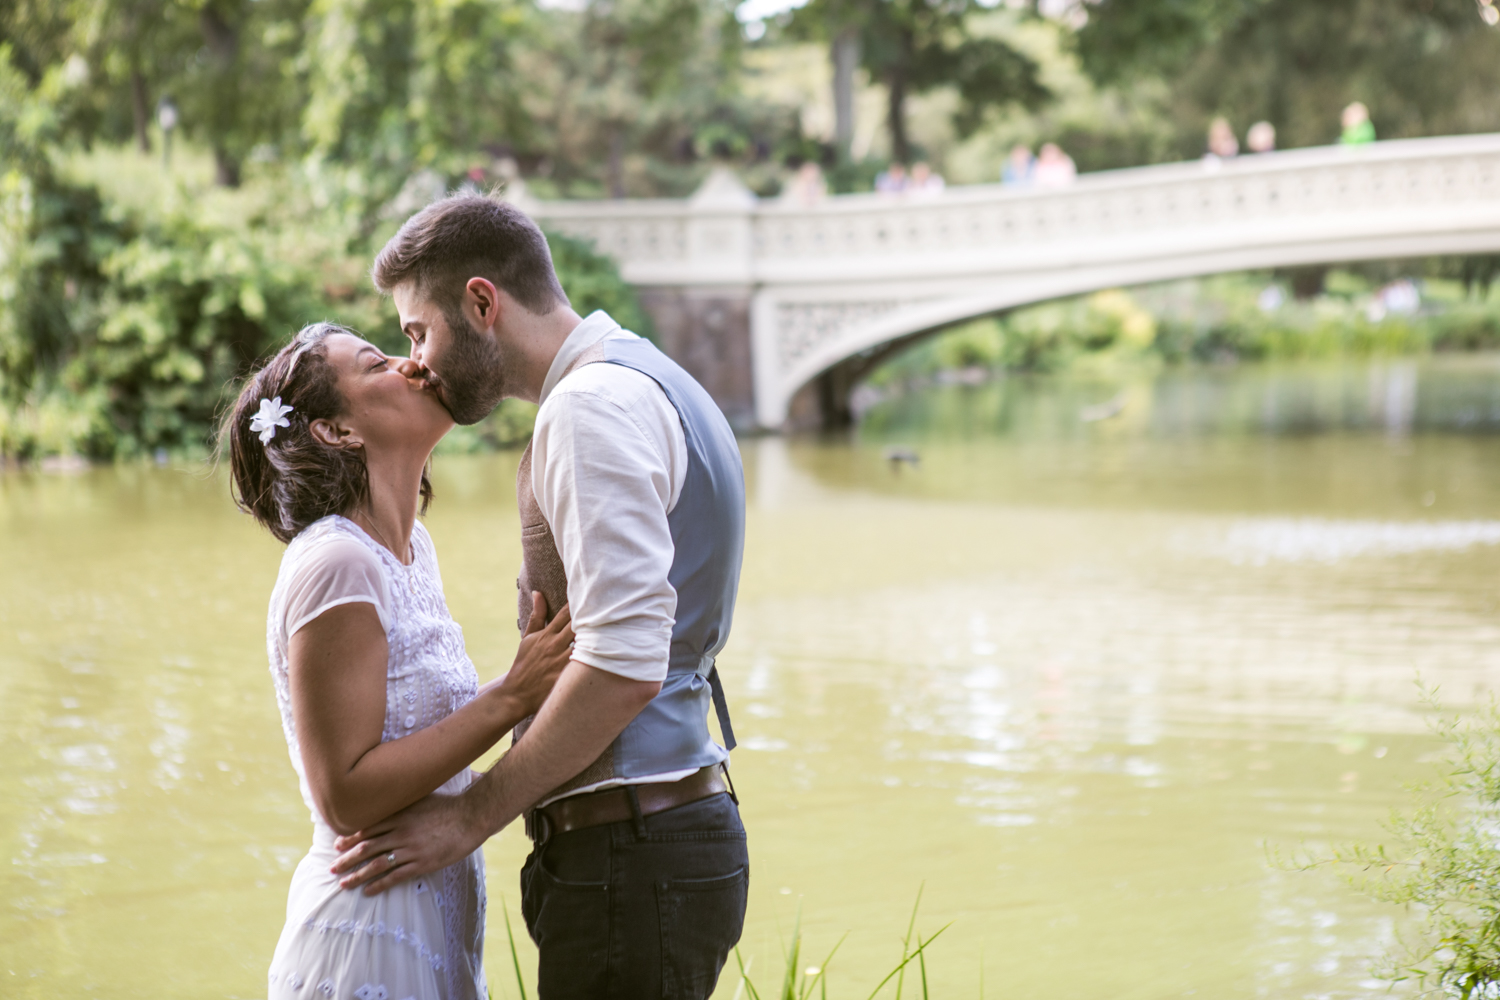 Bride and groom kiss during their wedding ceremony in Central Park.